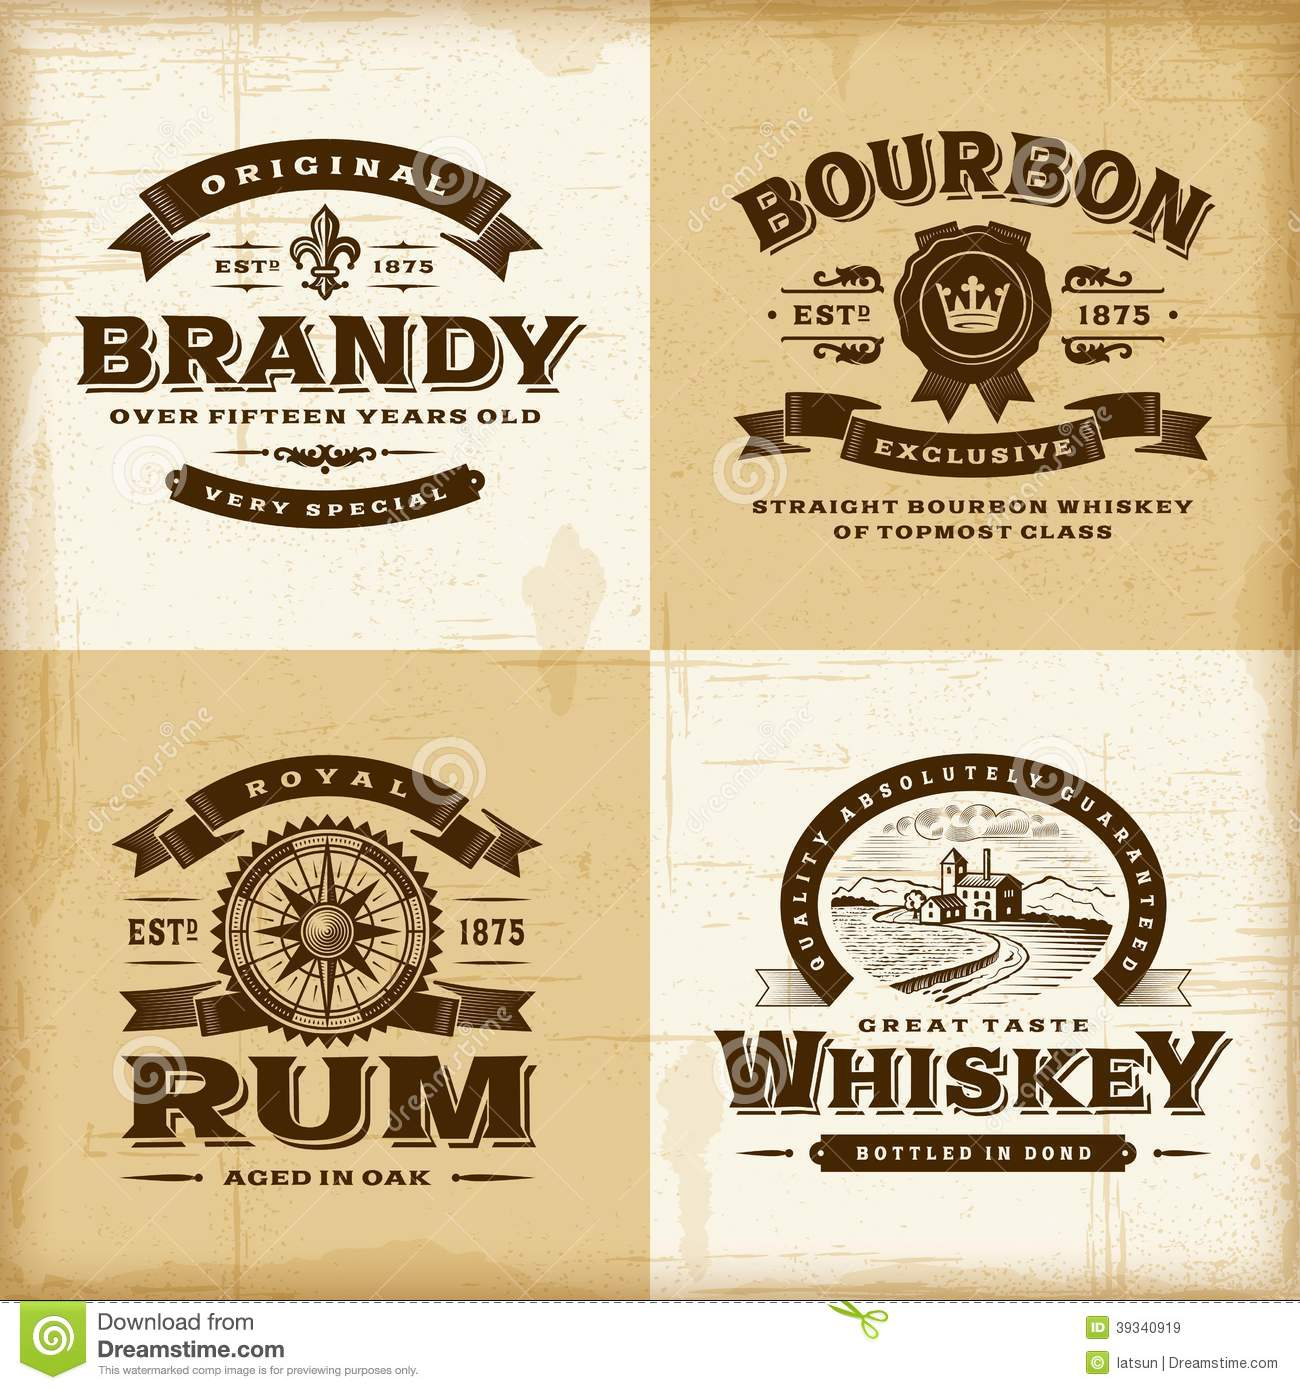 Royalty Free Stock Images Vintage Alcohol Labels Set Fully Editable Woodcut Style Eps Vector Illustration Image39340919 on vintage style house plans